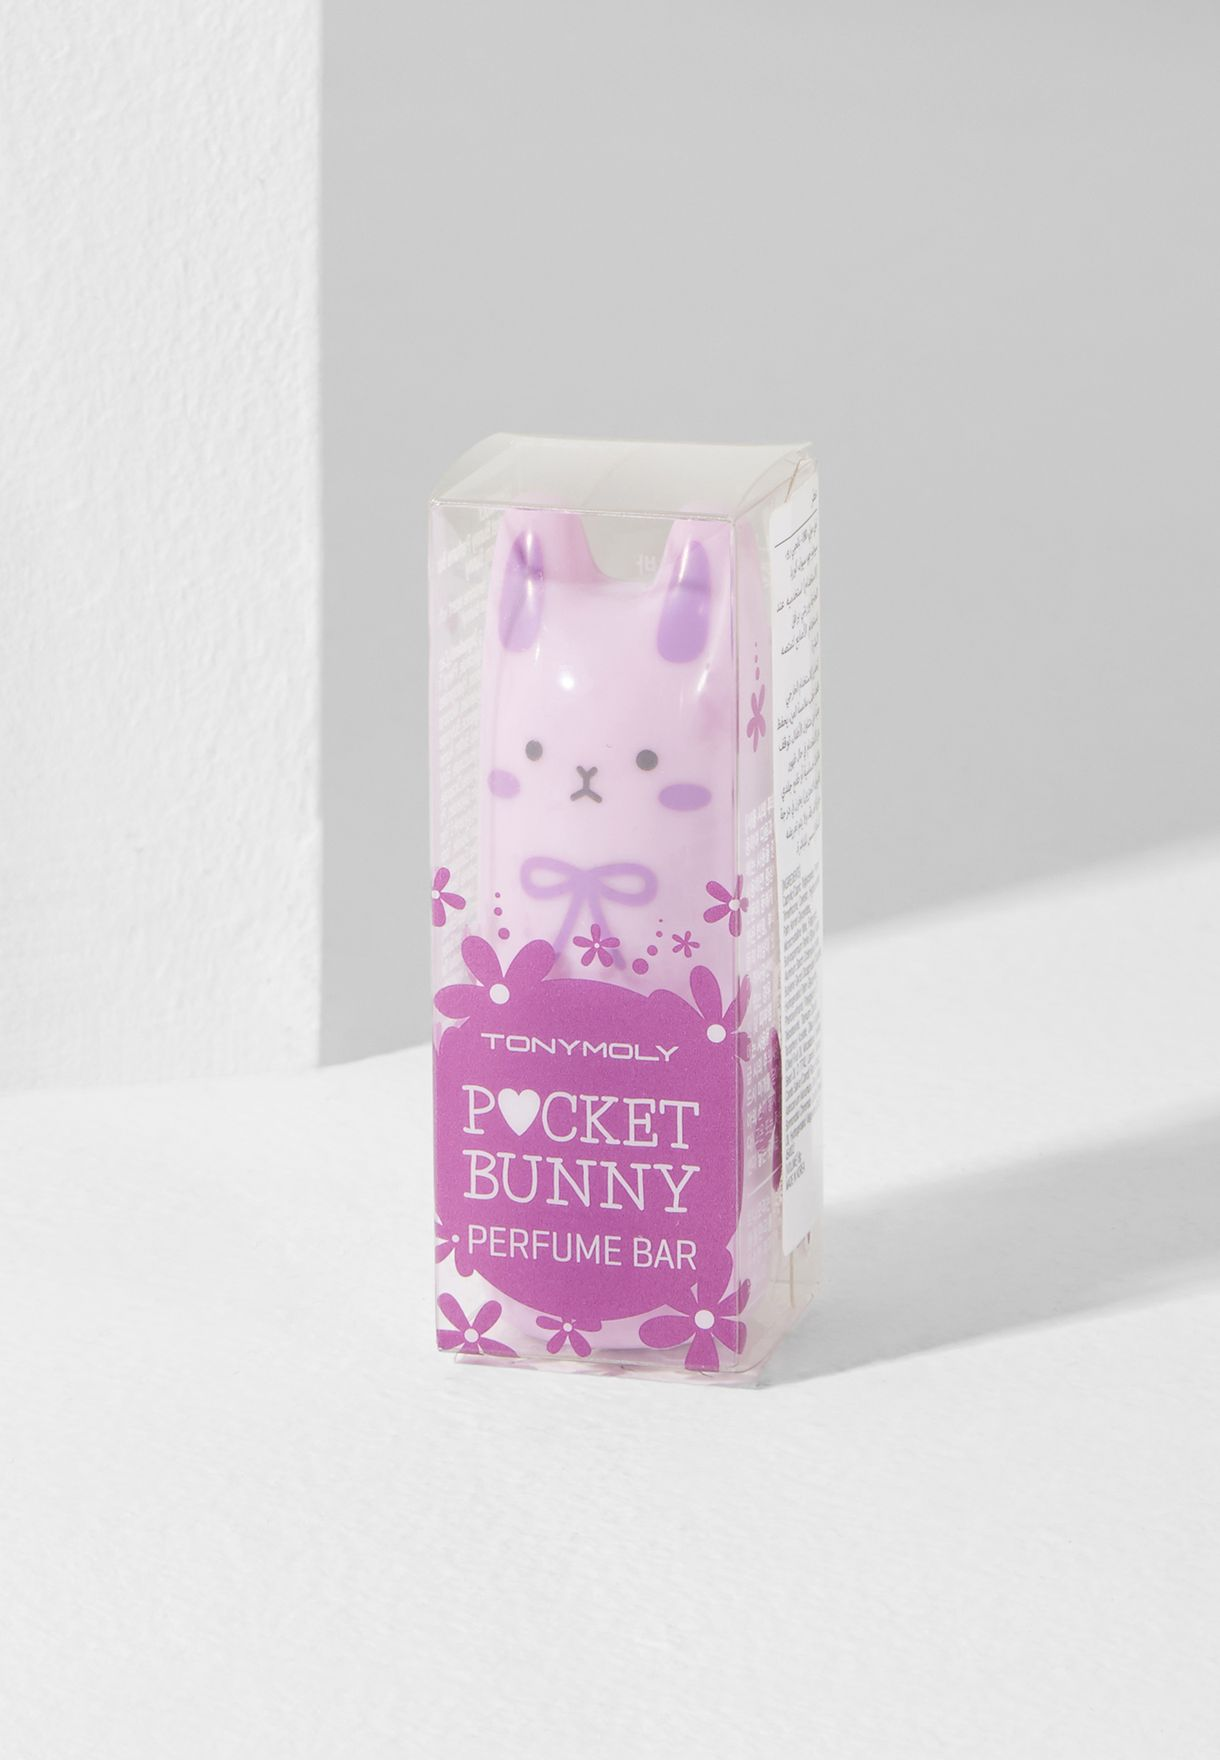 Pocket Bunny Perfume Bar